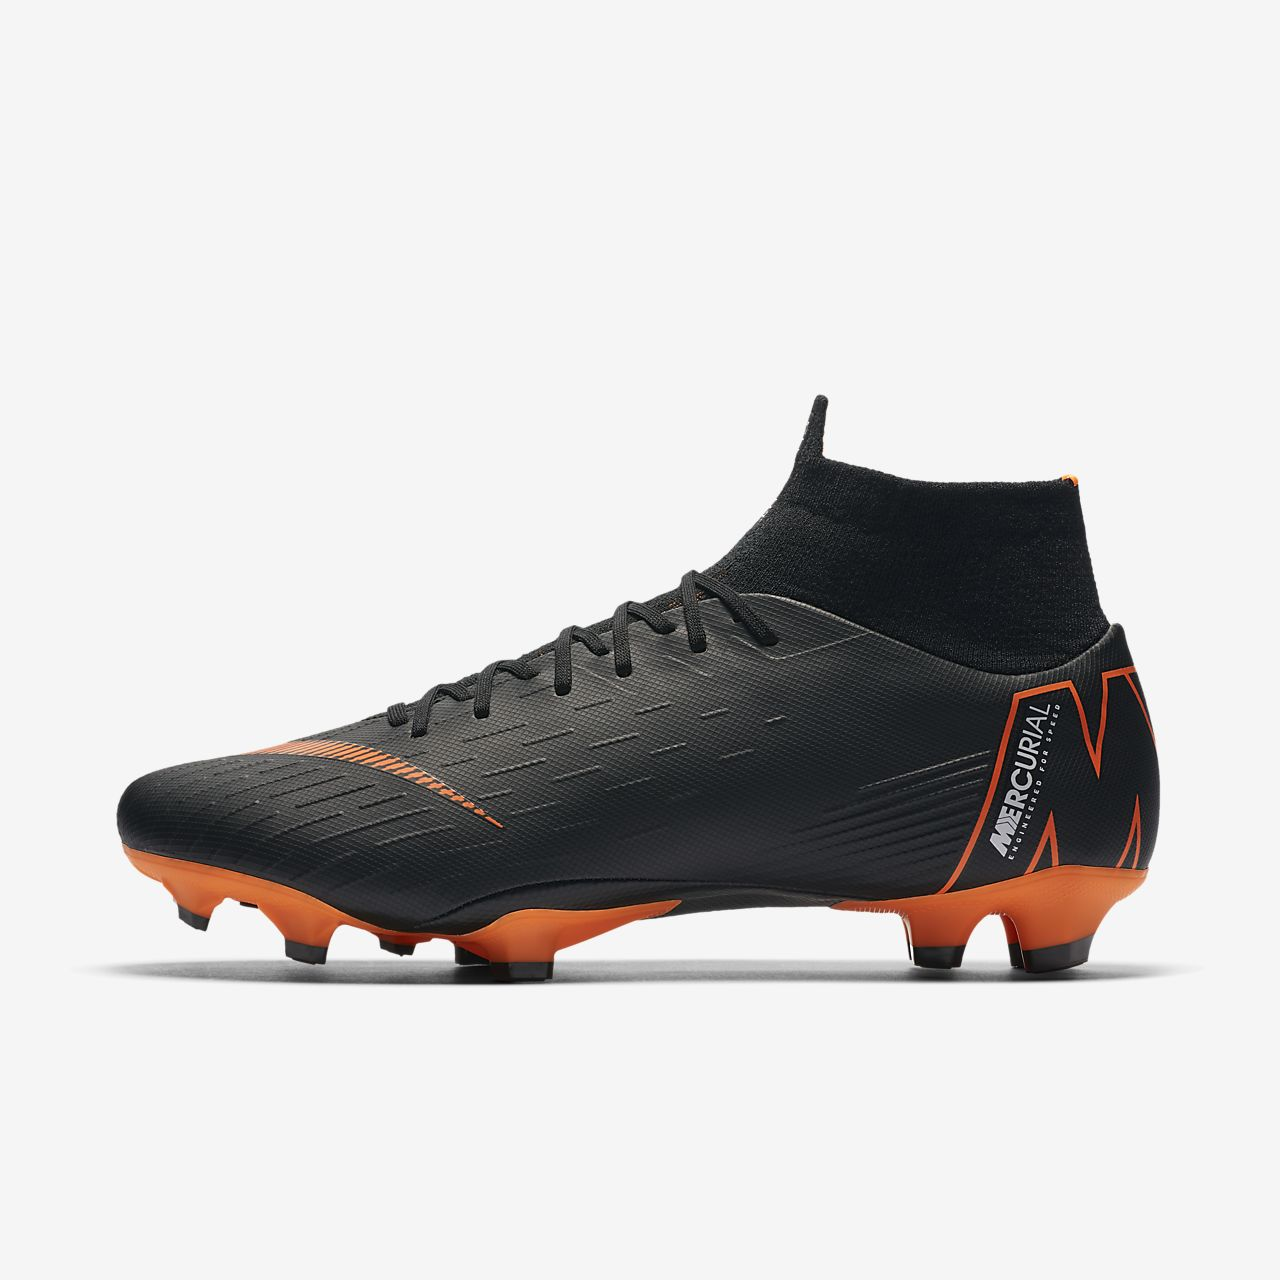 ... Nike Mercurial Superfly VI Pro Firm-Ground Soccer Cleat